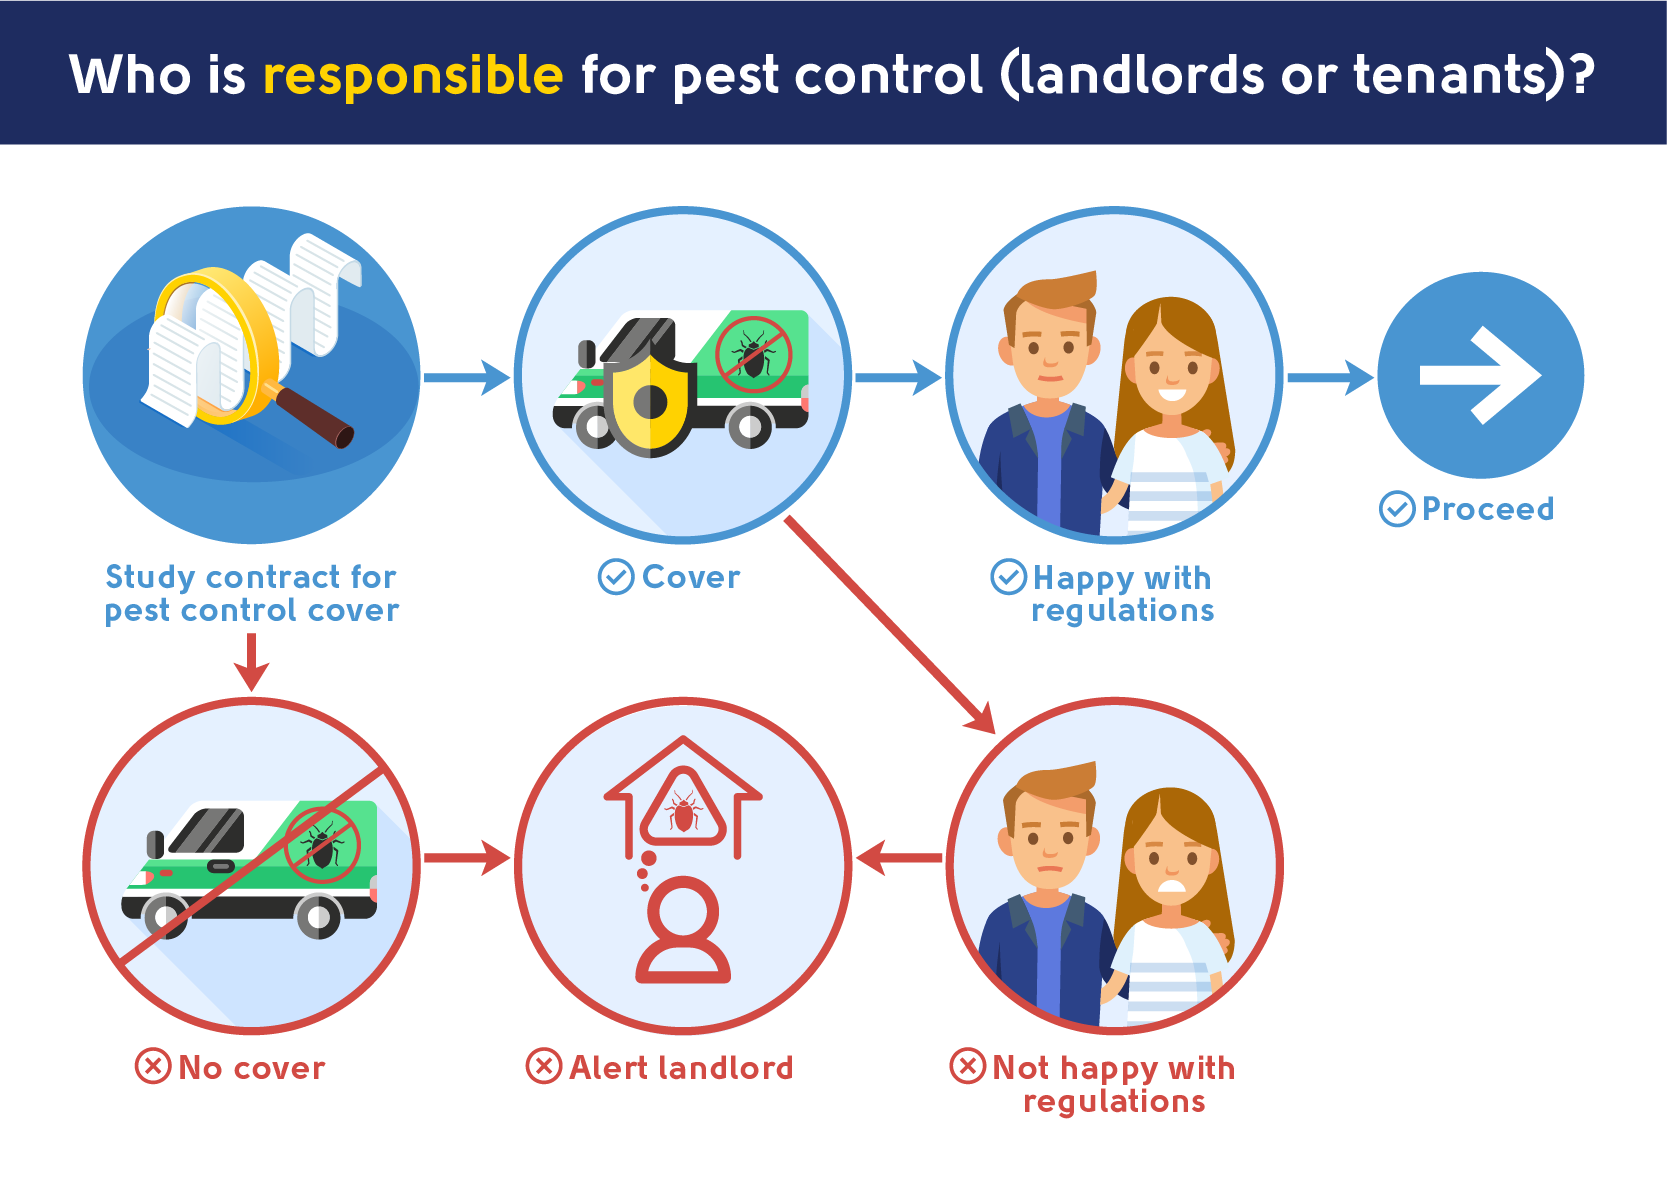 who is responsible for Pest Control - Landlords or tenants?